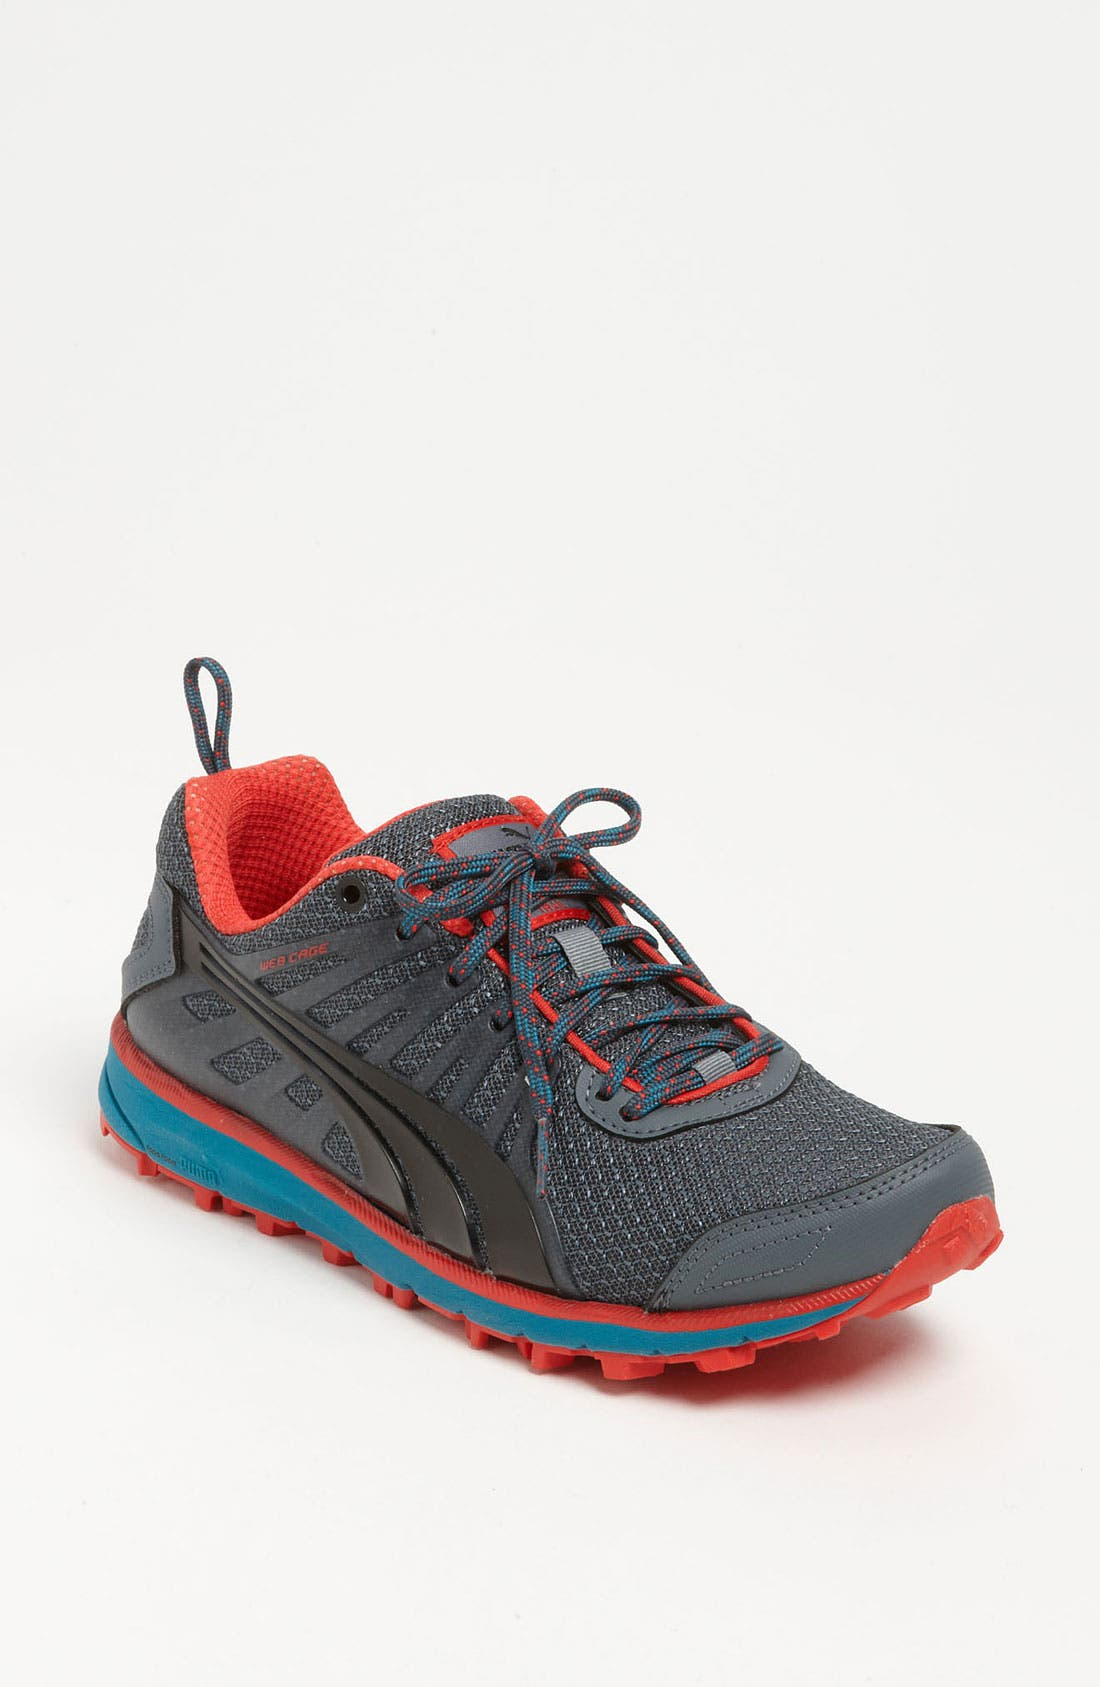 Alternate Image 1 Selected - PUMA 'Faas 300' Trail Running Shoe (Women)